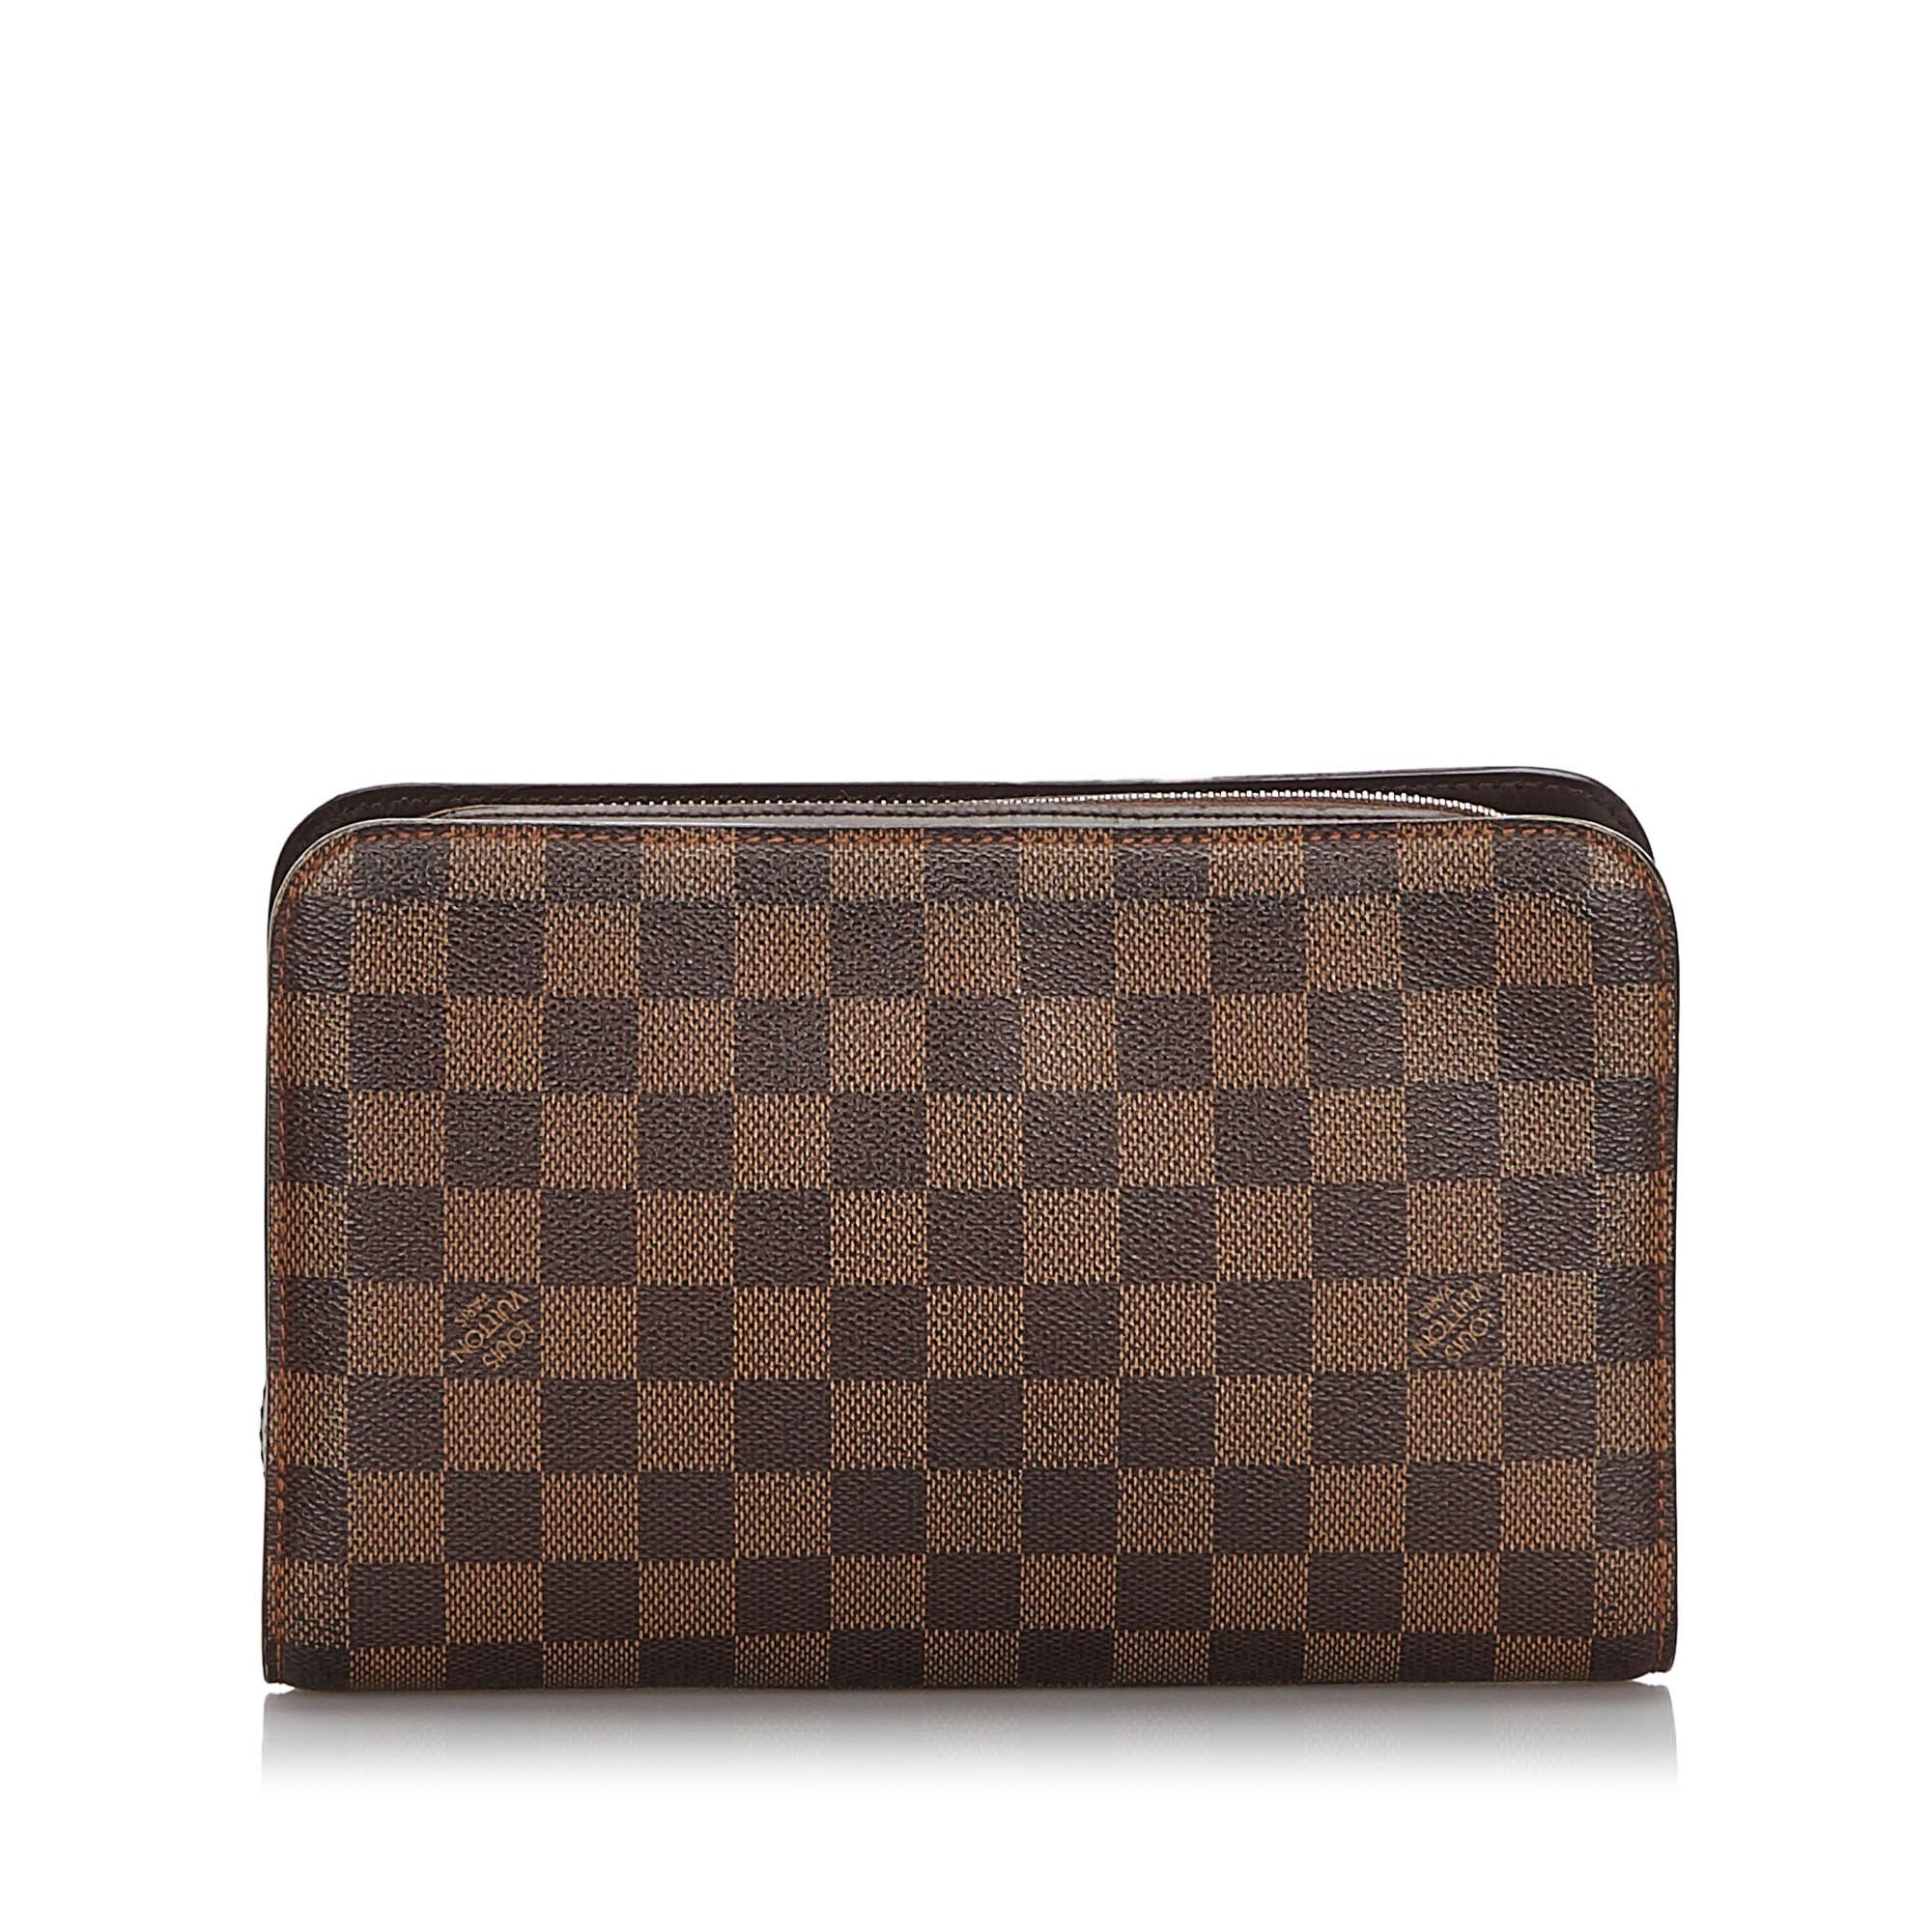 Vintage Louis Vuitton Damier Ebene Pochette Saint Paul Brown